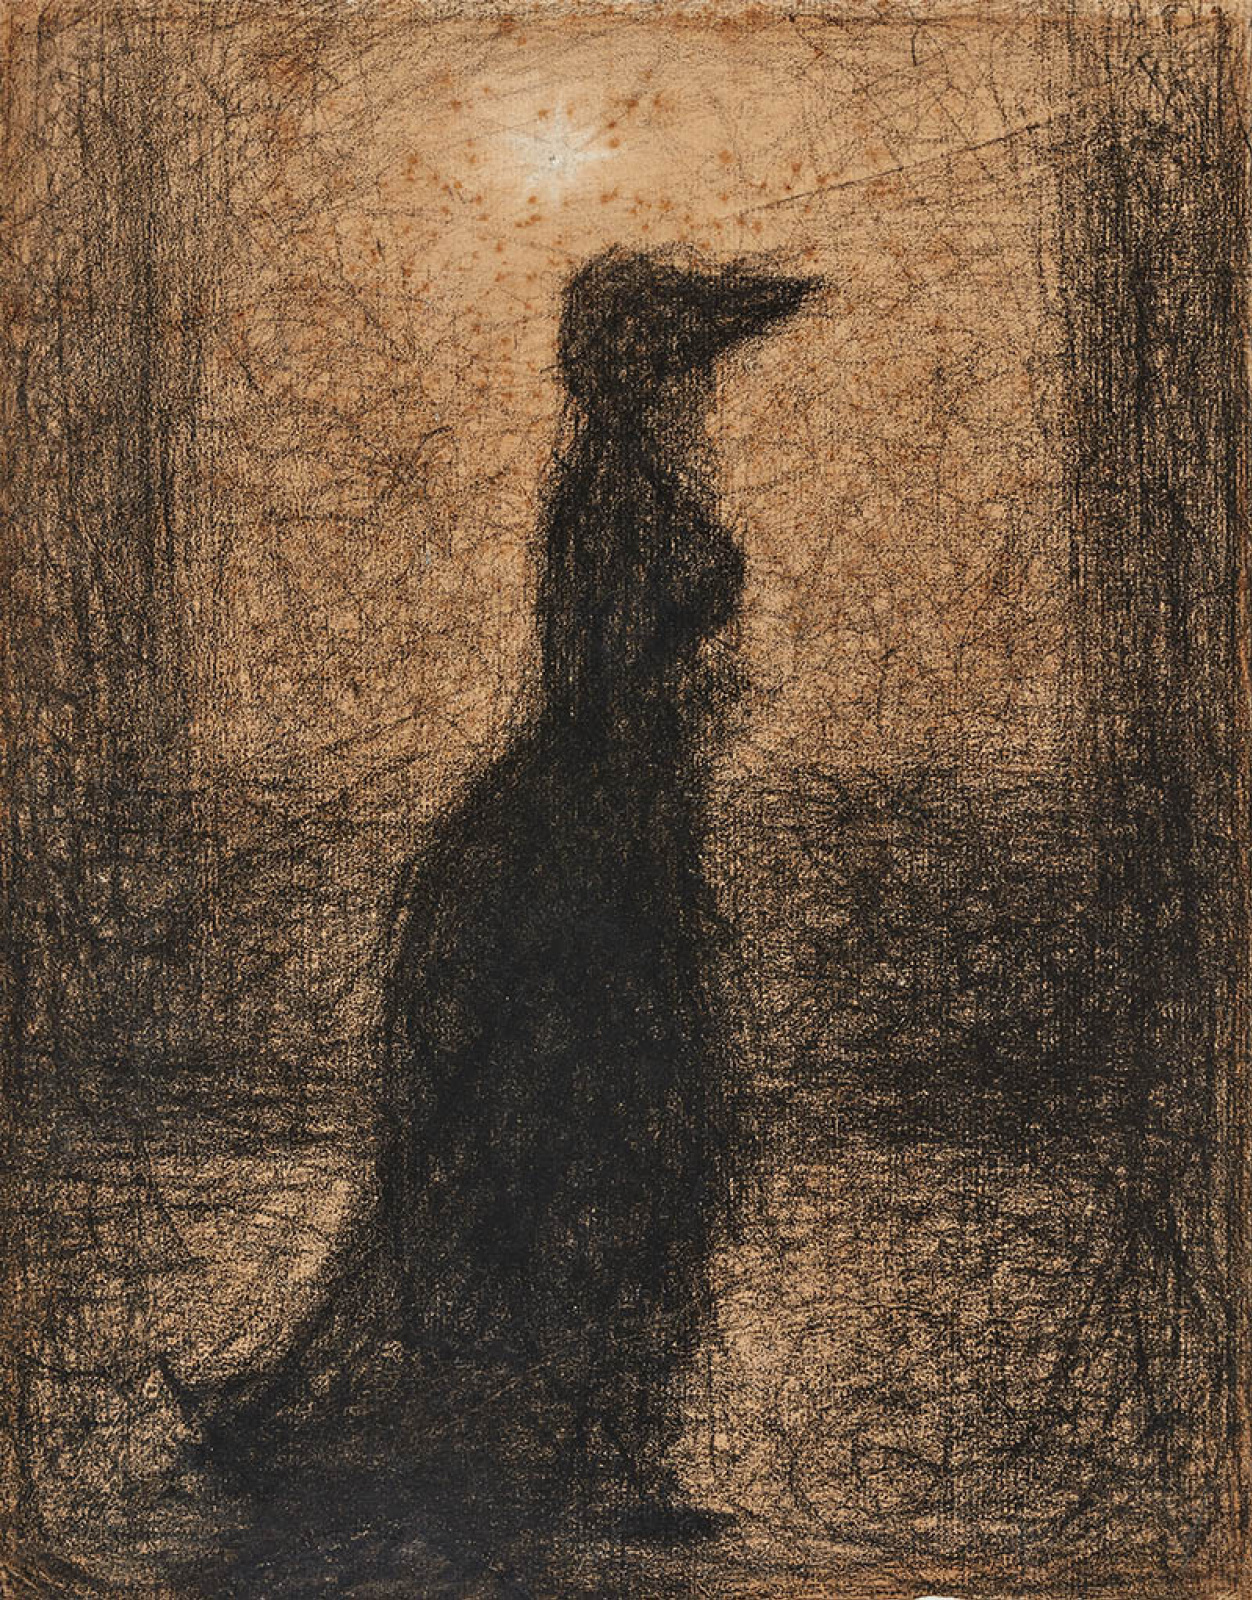 Georges Seurat. Strolling Woman